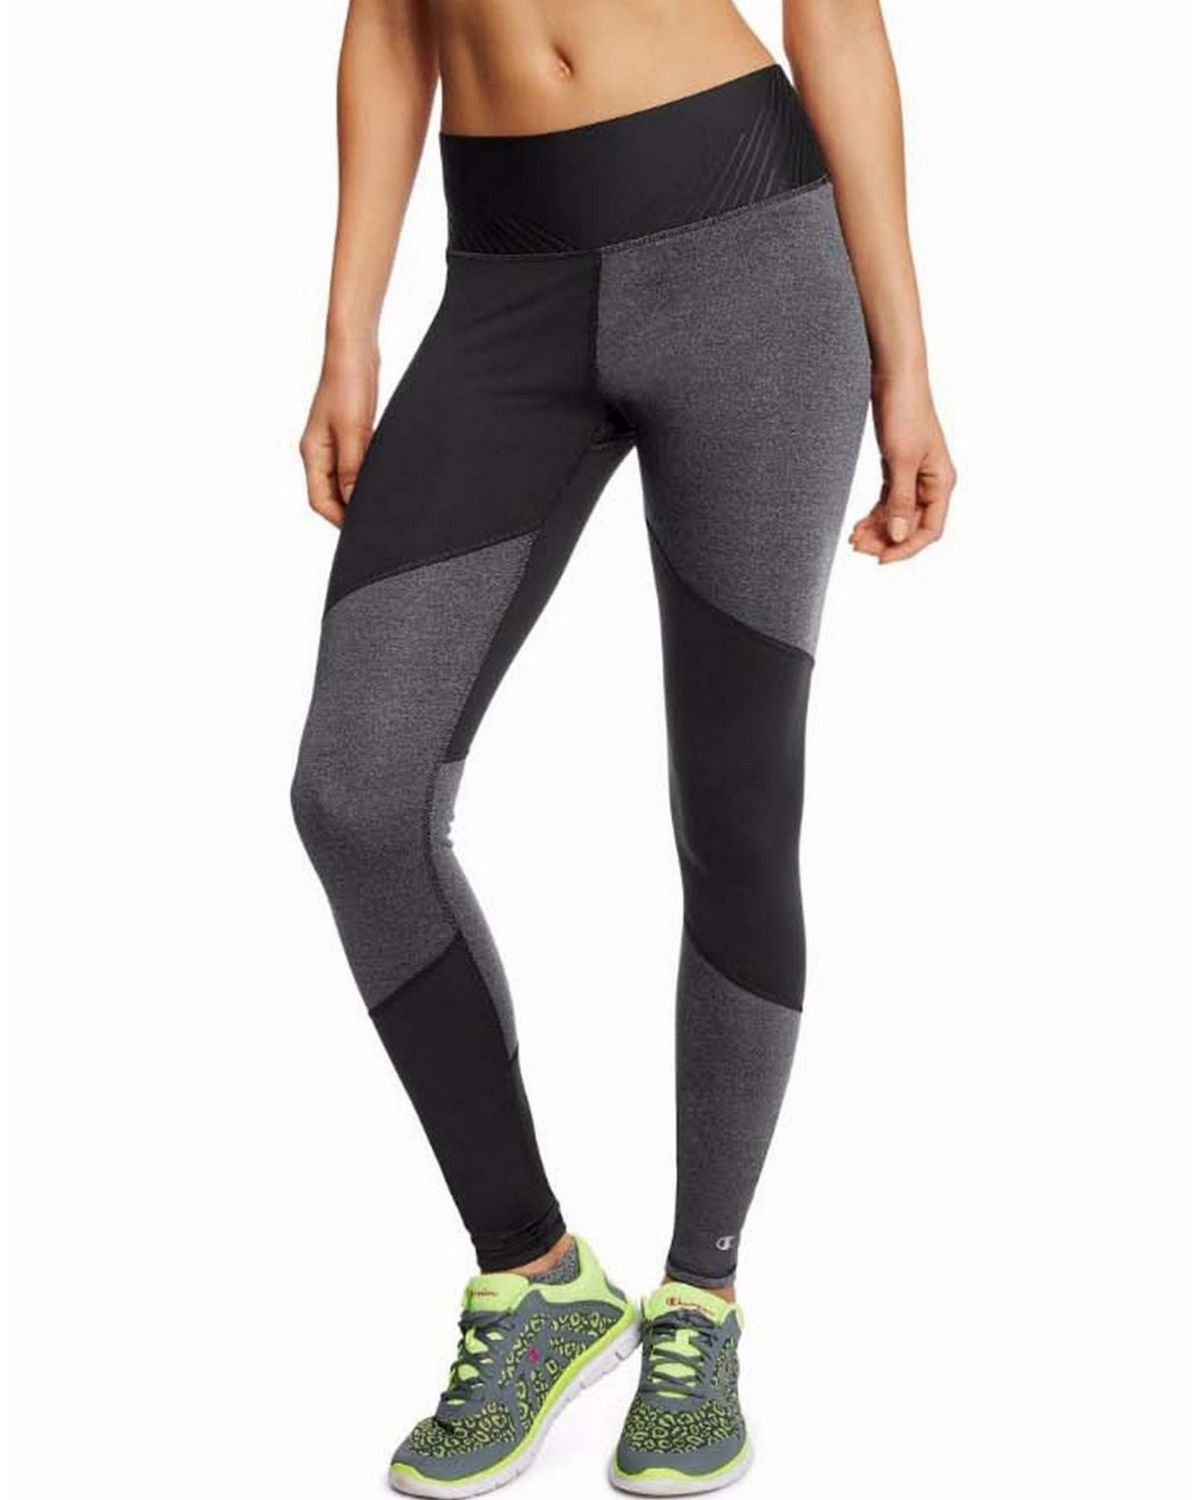 Champion M0940 Womens Run Tights - Black/Granite Heather - XL M0940